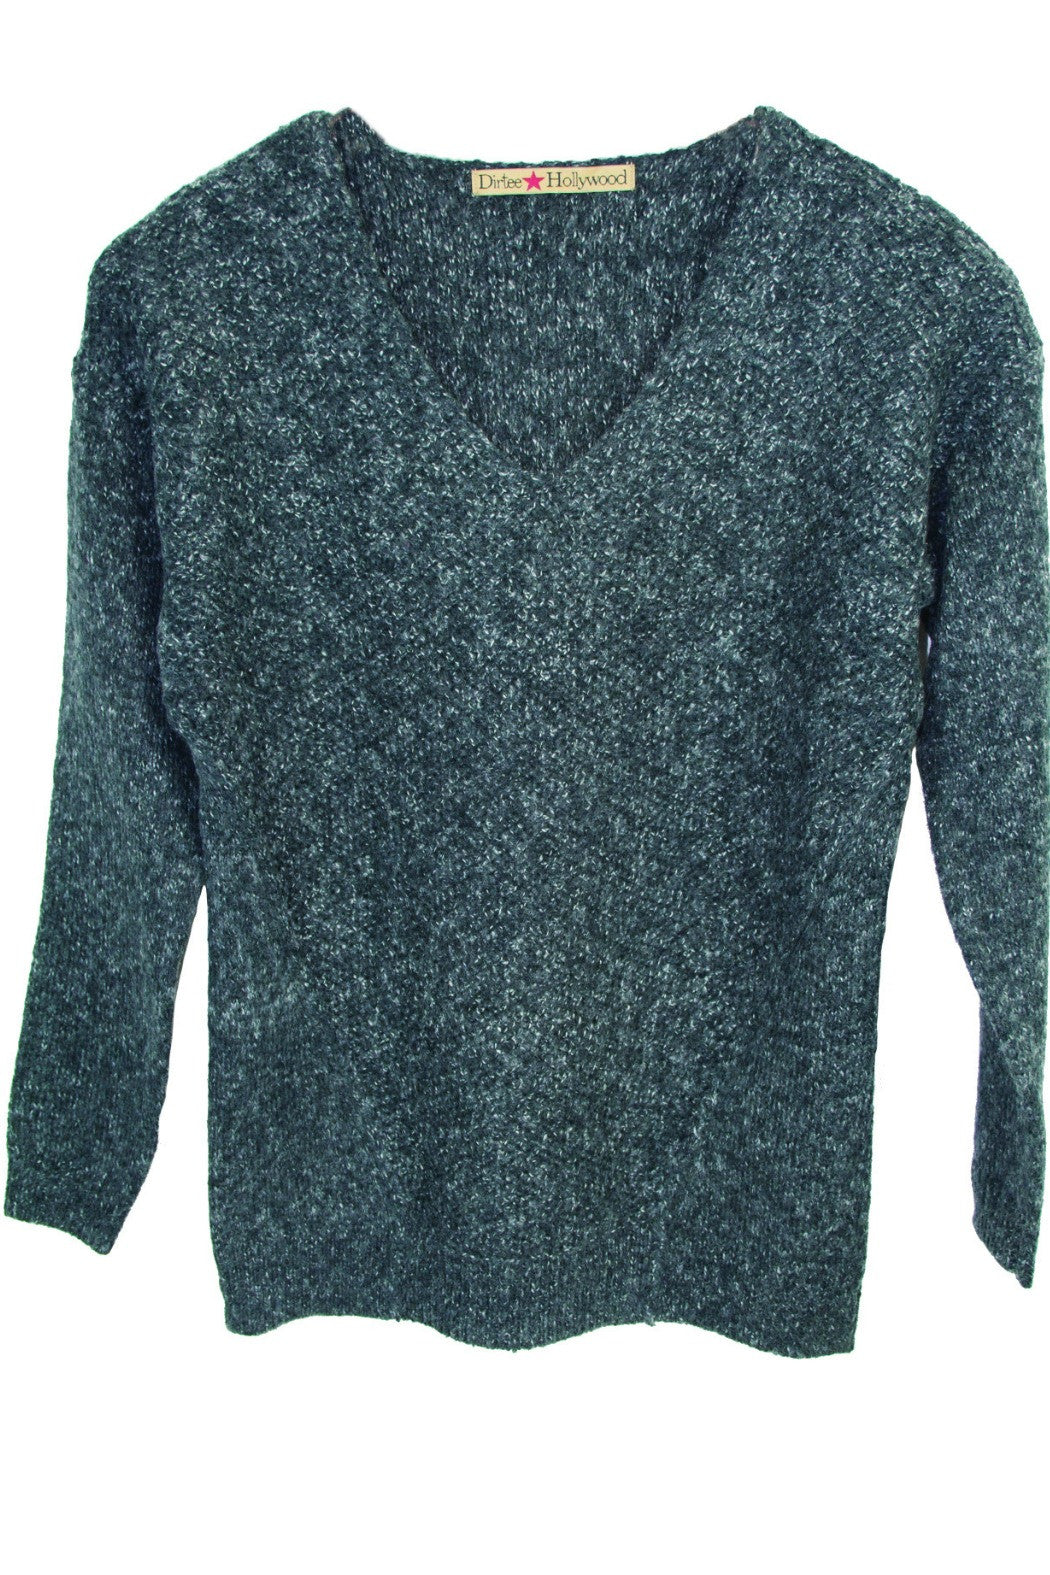 V-Neck Pullover Sweater - R+D Hipster Emporium | Womens & Mens Clothing - 1